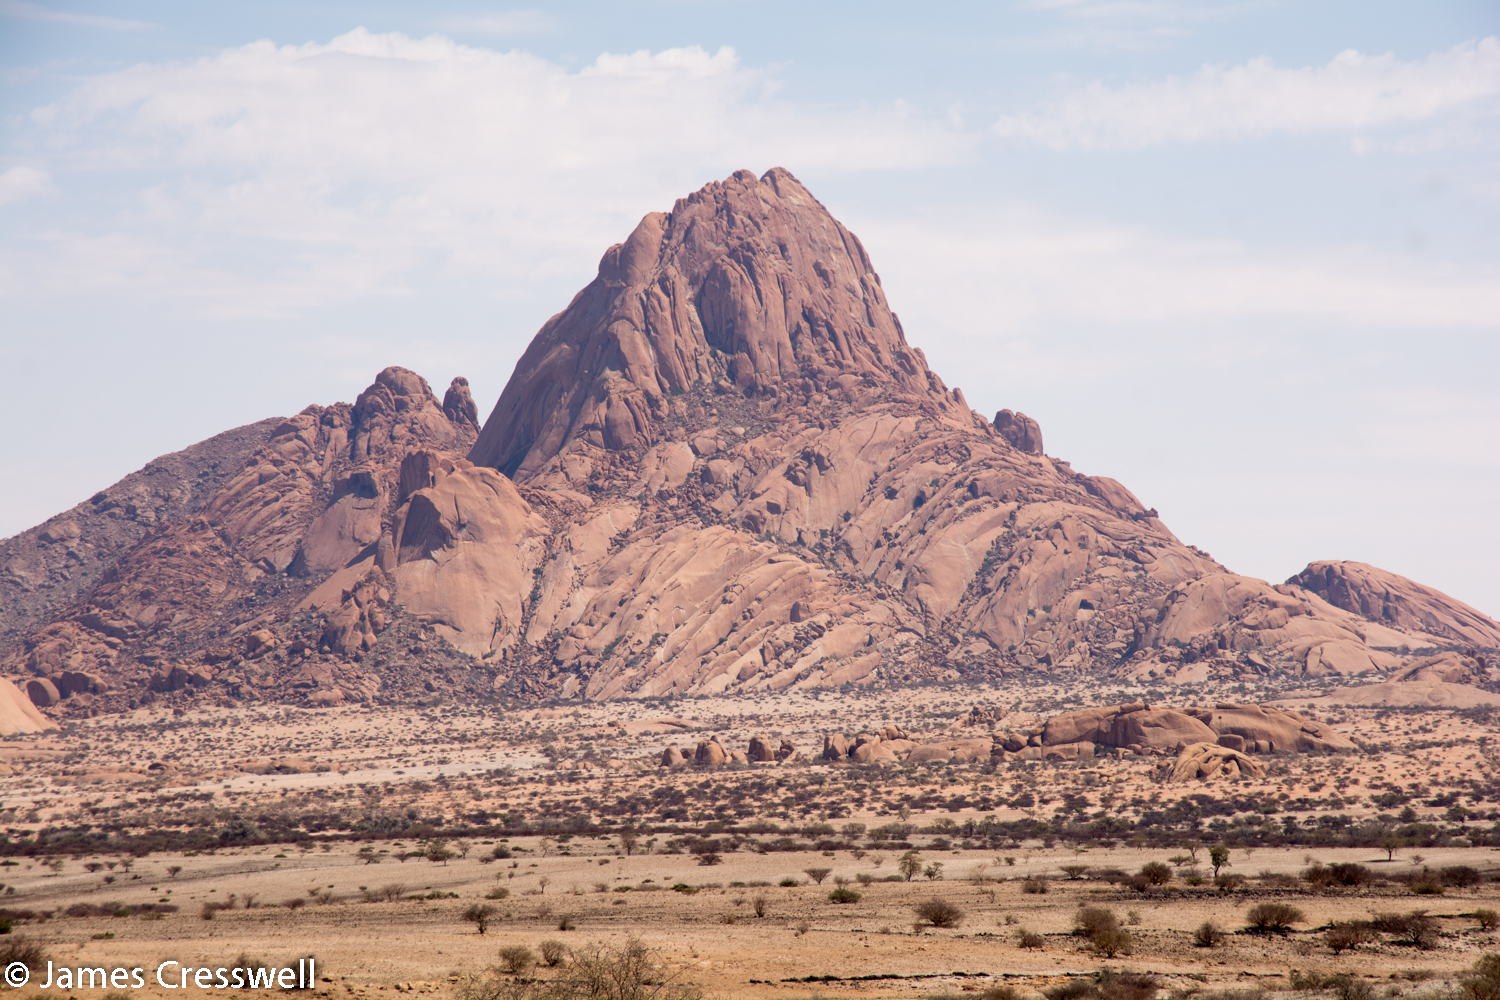 Spitzkoppe, Namibia - the mountain is a granite intrusion that was emplaced around 120 million years ago by the Tristan da Cunha Hotspot as the Gondwanaland was beginning to split.